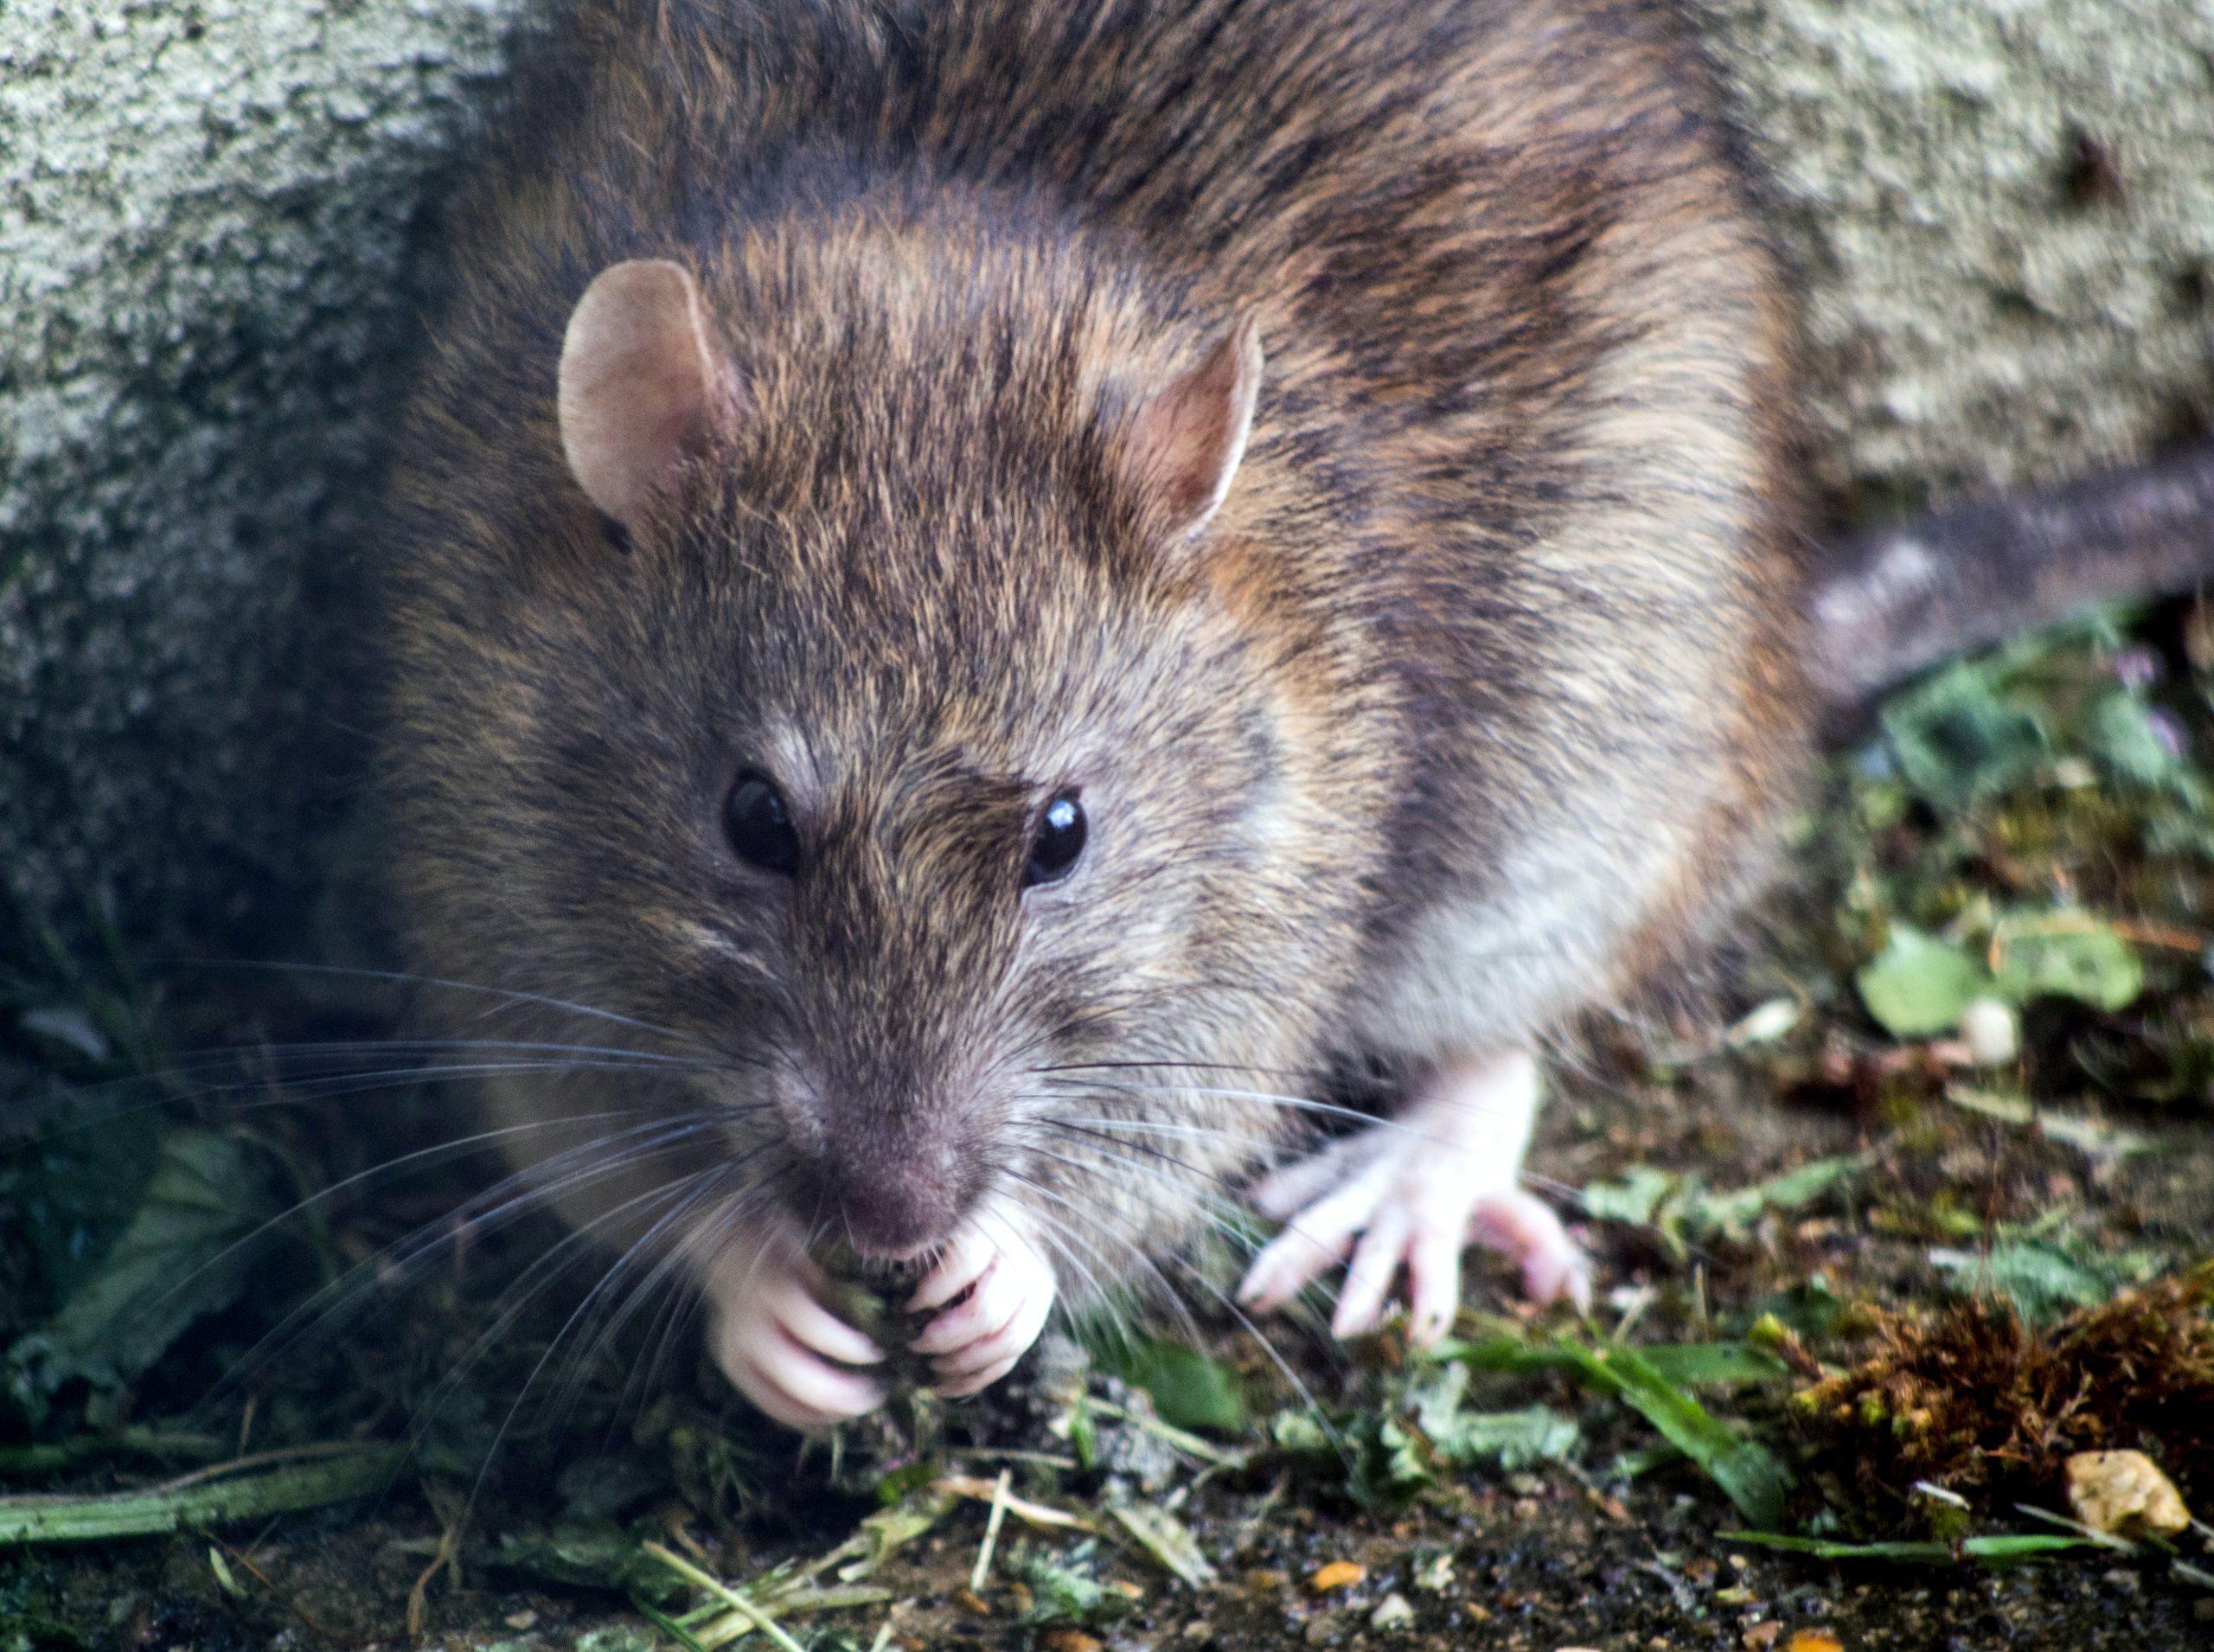 No more Mr Mice Guy: how one driver beat the rodents eating his car